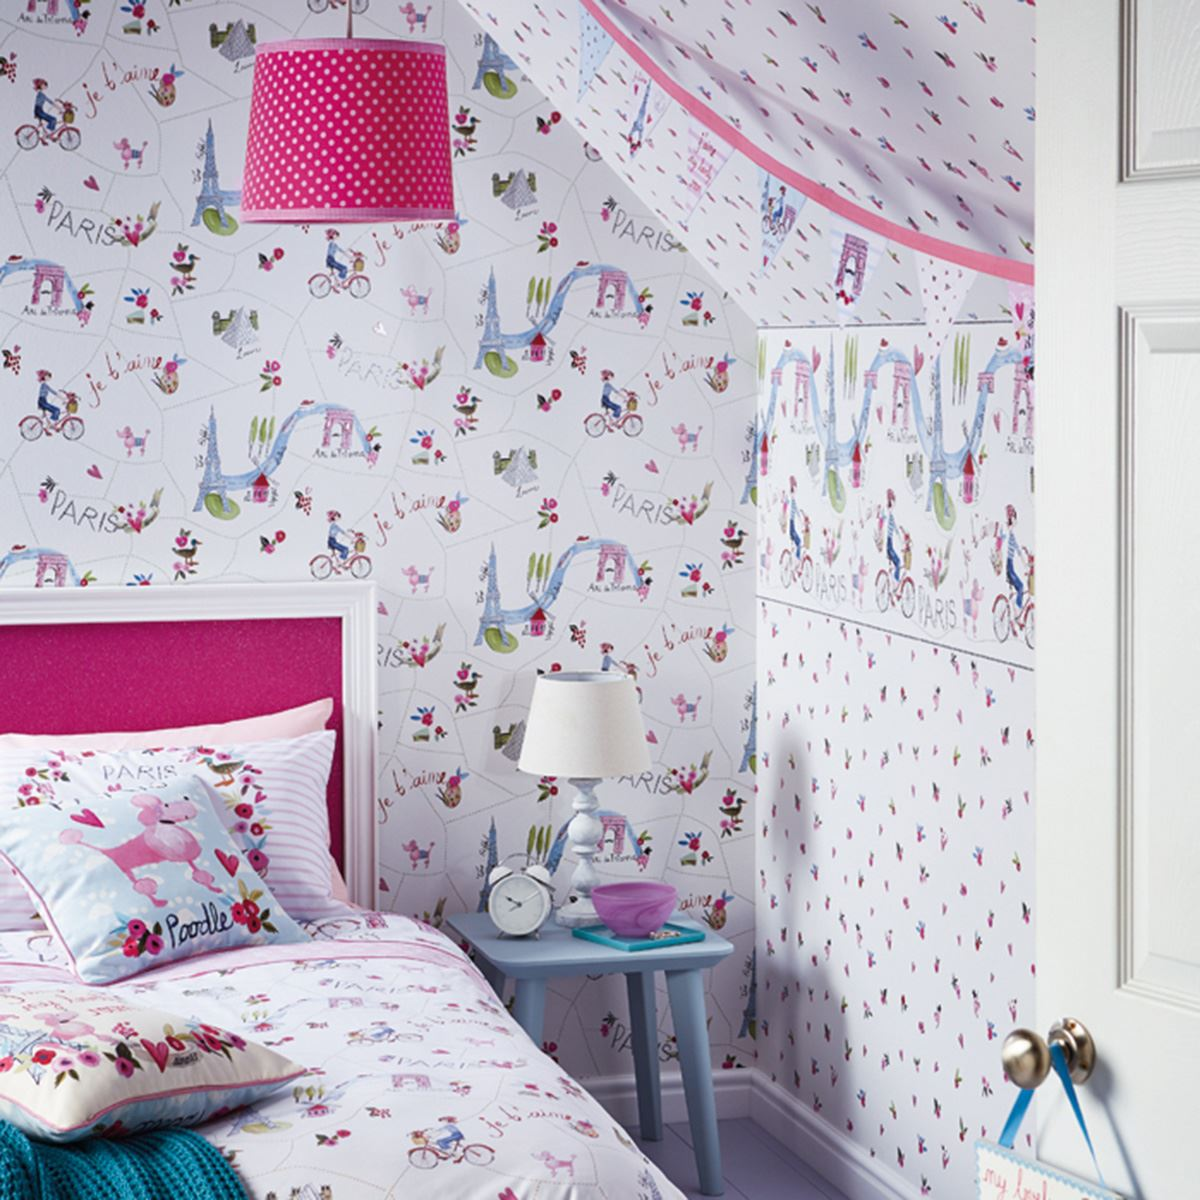 GIRLS WALLPAPER THEMED BEDROOM UNICORN STARS HEART GLITTER CHIC FEATURE  WALL NEW. GIRLS WALLPAPER THEMED BEDROOM UNICORN STARS HEART GLITTER CHIC